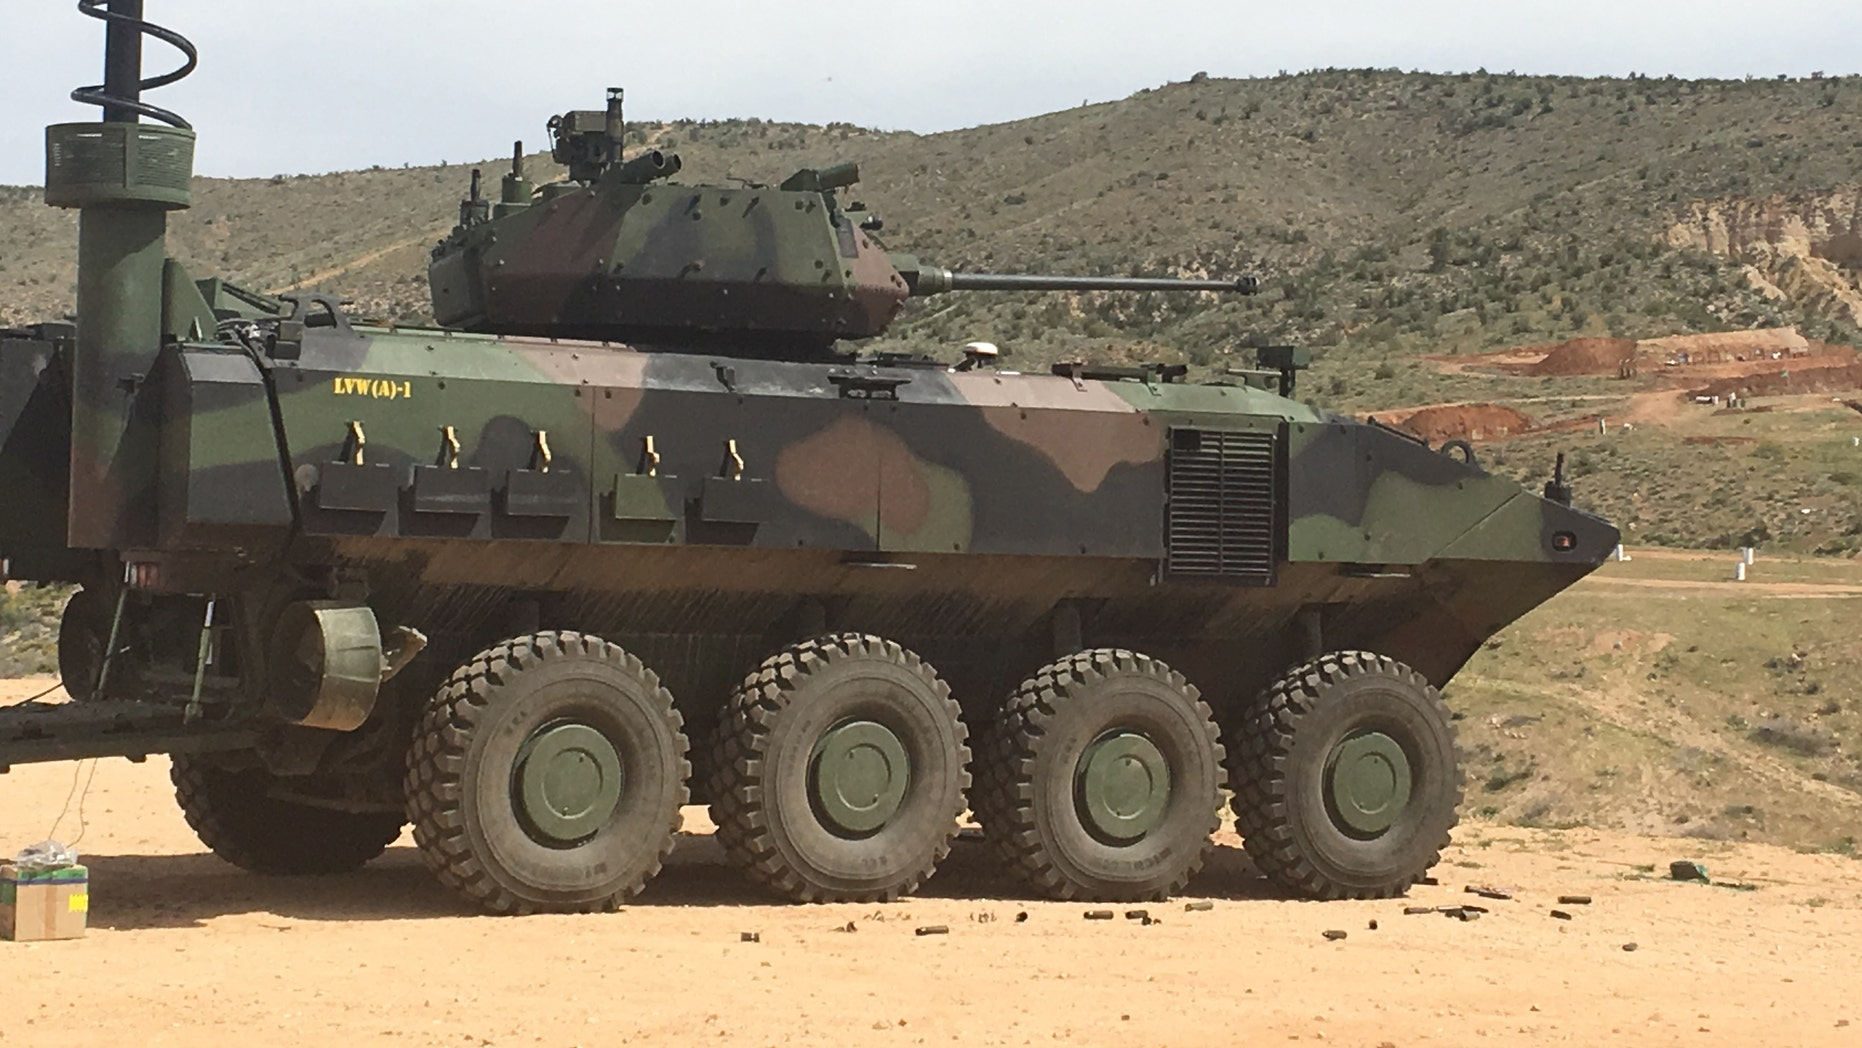 A Marine Corps amphibious combat vehicle armed with a 40mm cannon is seen in Kingman, Arizona.